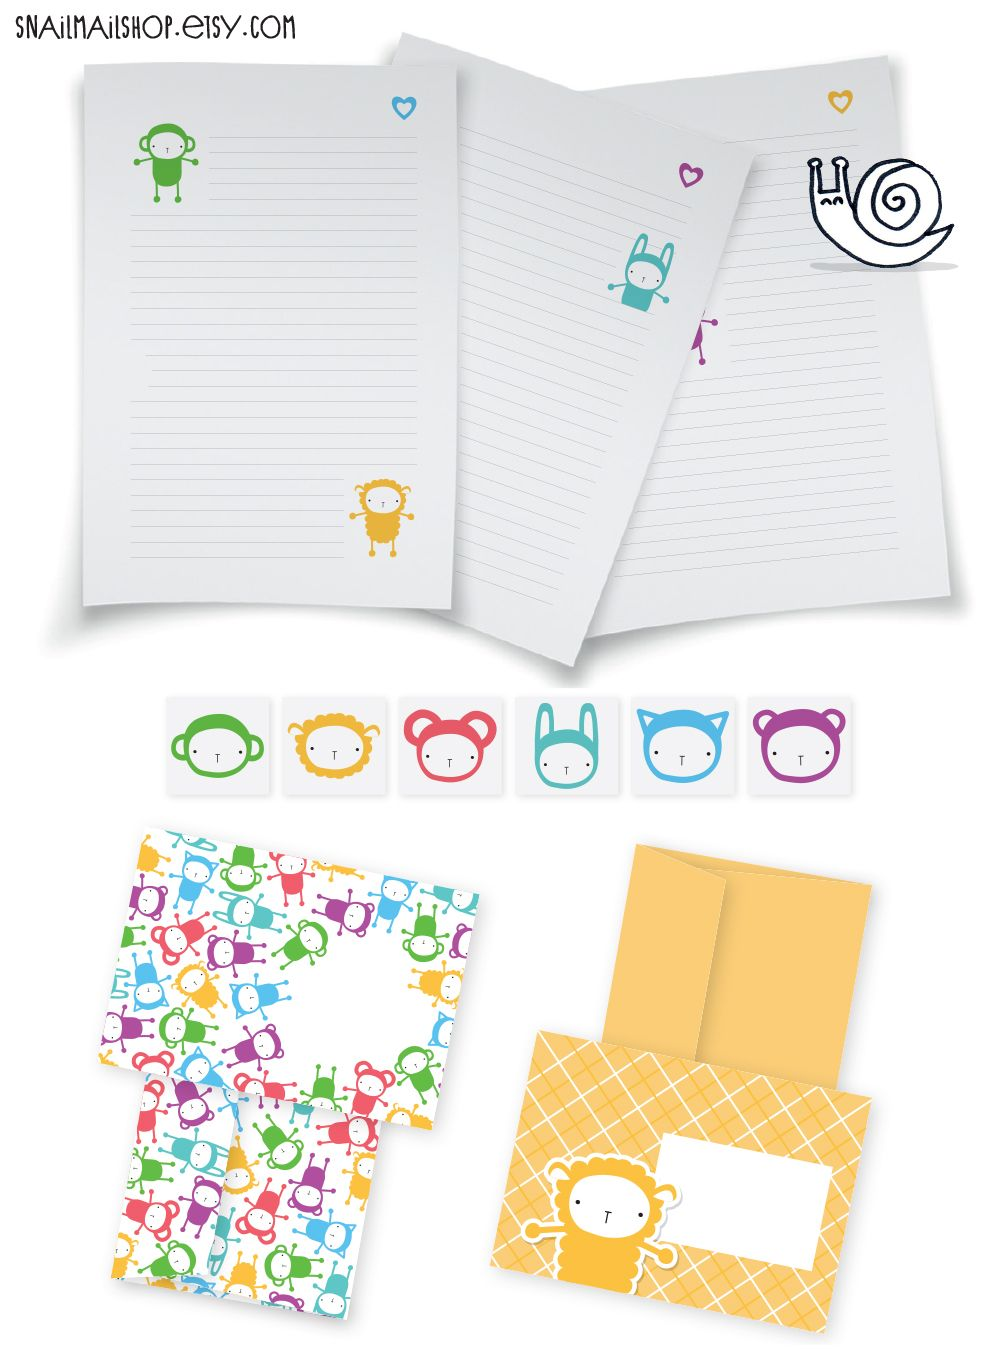 Animals Stationery-set with Writing Paper, Envelopes and Stickers for Snailmail (printable) https://www.etsy.com/listing/114386550/animals-stationery-set-with-writing